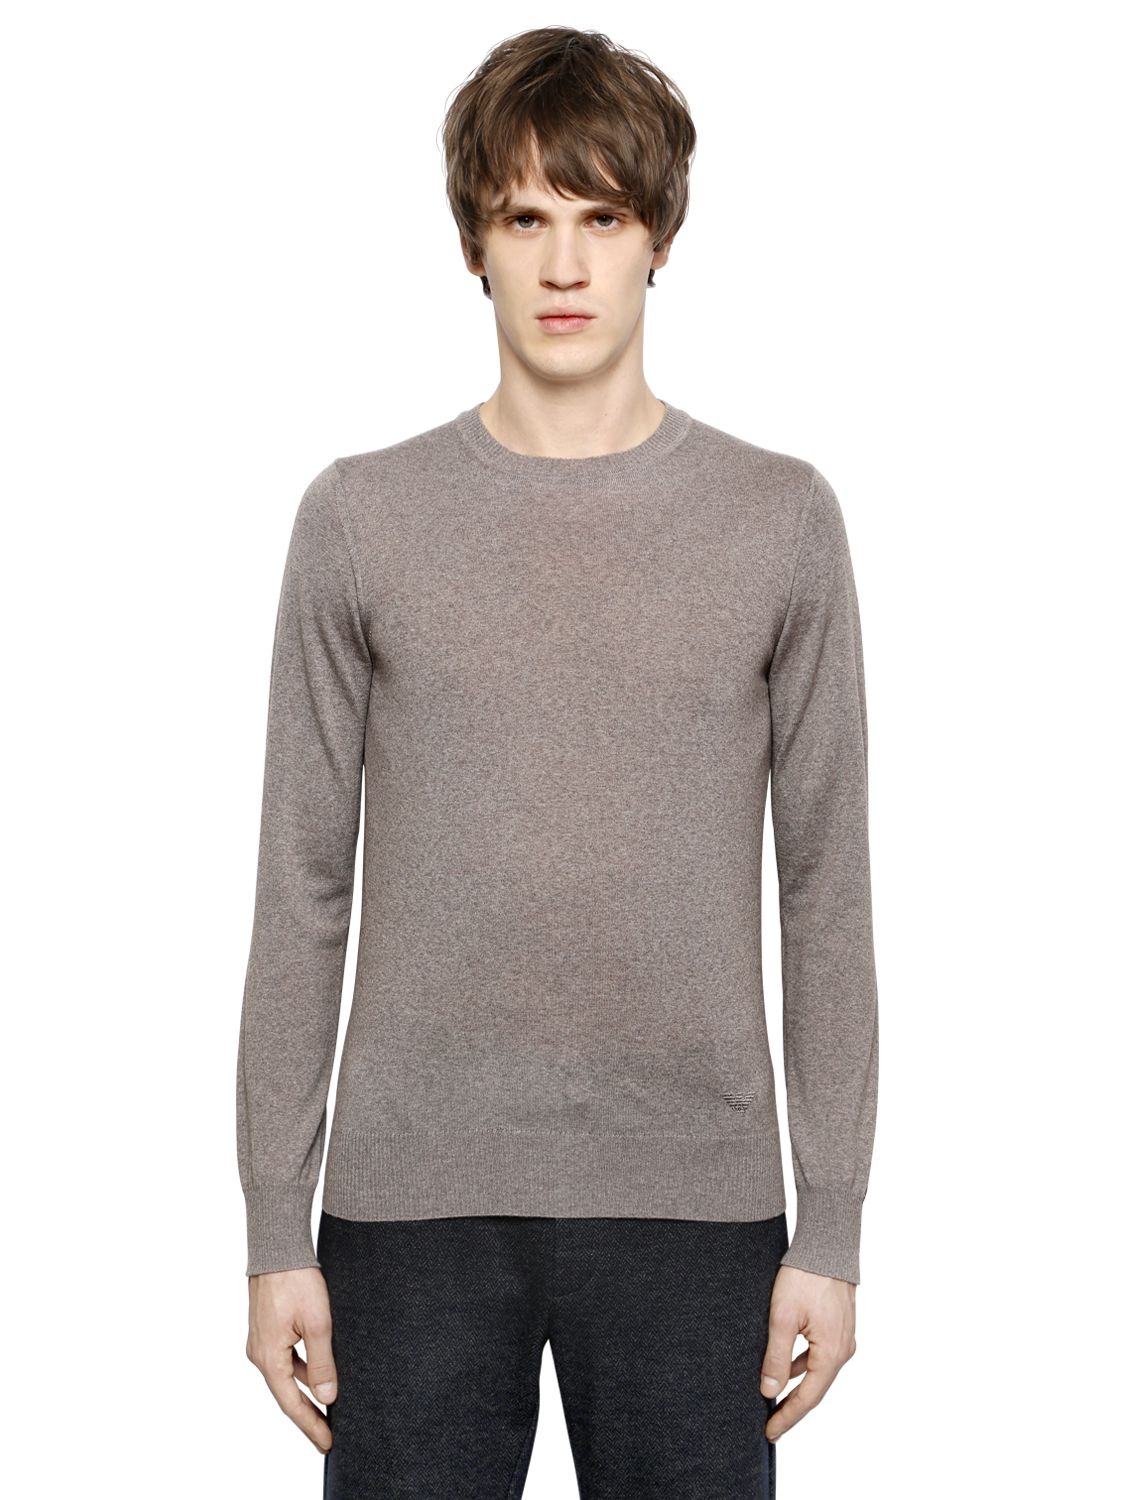 emporio armani virgin wool sweater in gray for men lyst. Black Bedroom Furniture Sets. Home Design Ideas